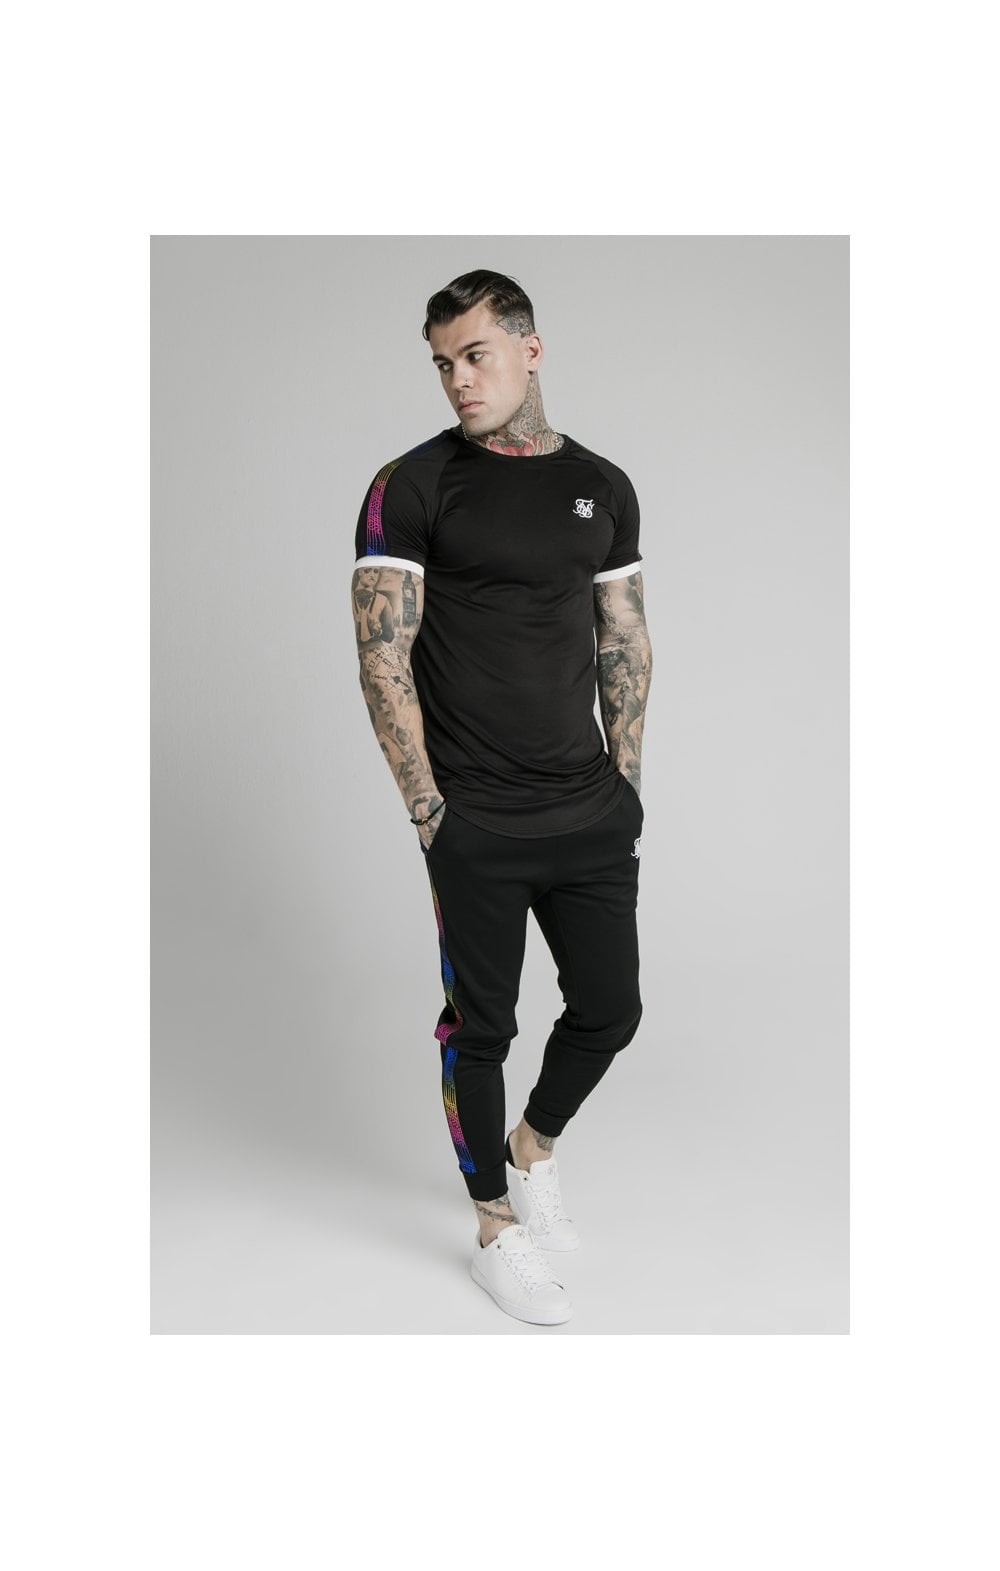 SikSilk S/S Fade Runner Tech Tee - Black (2)